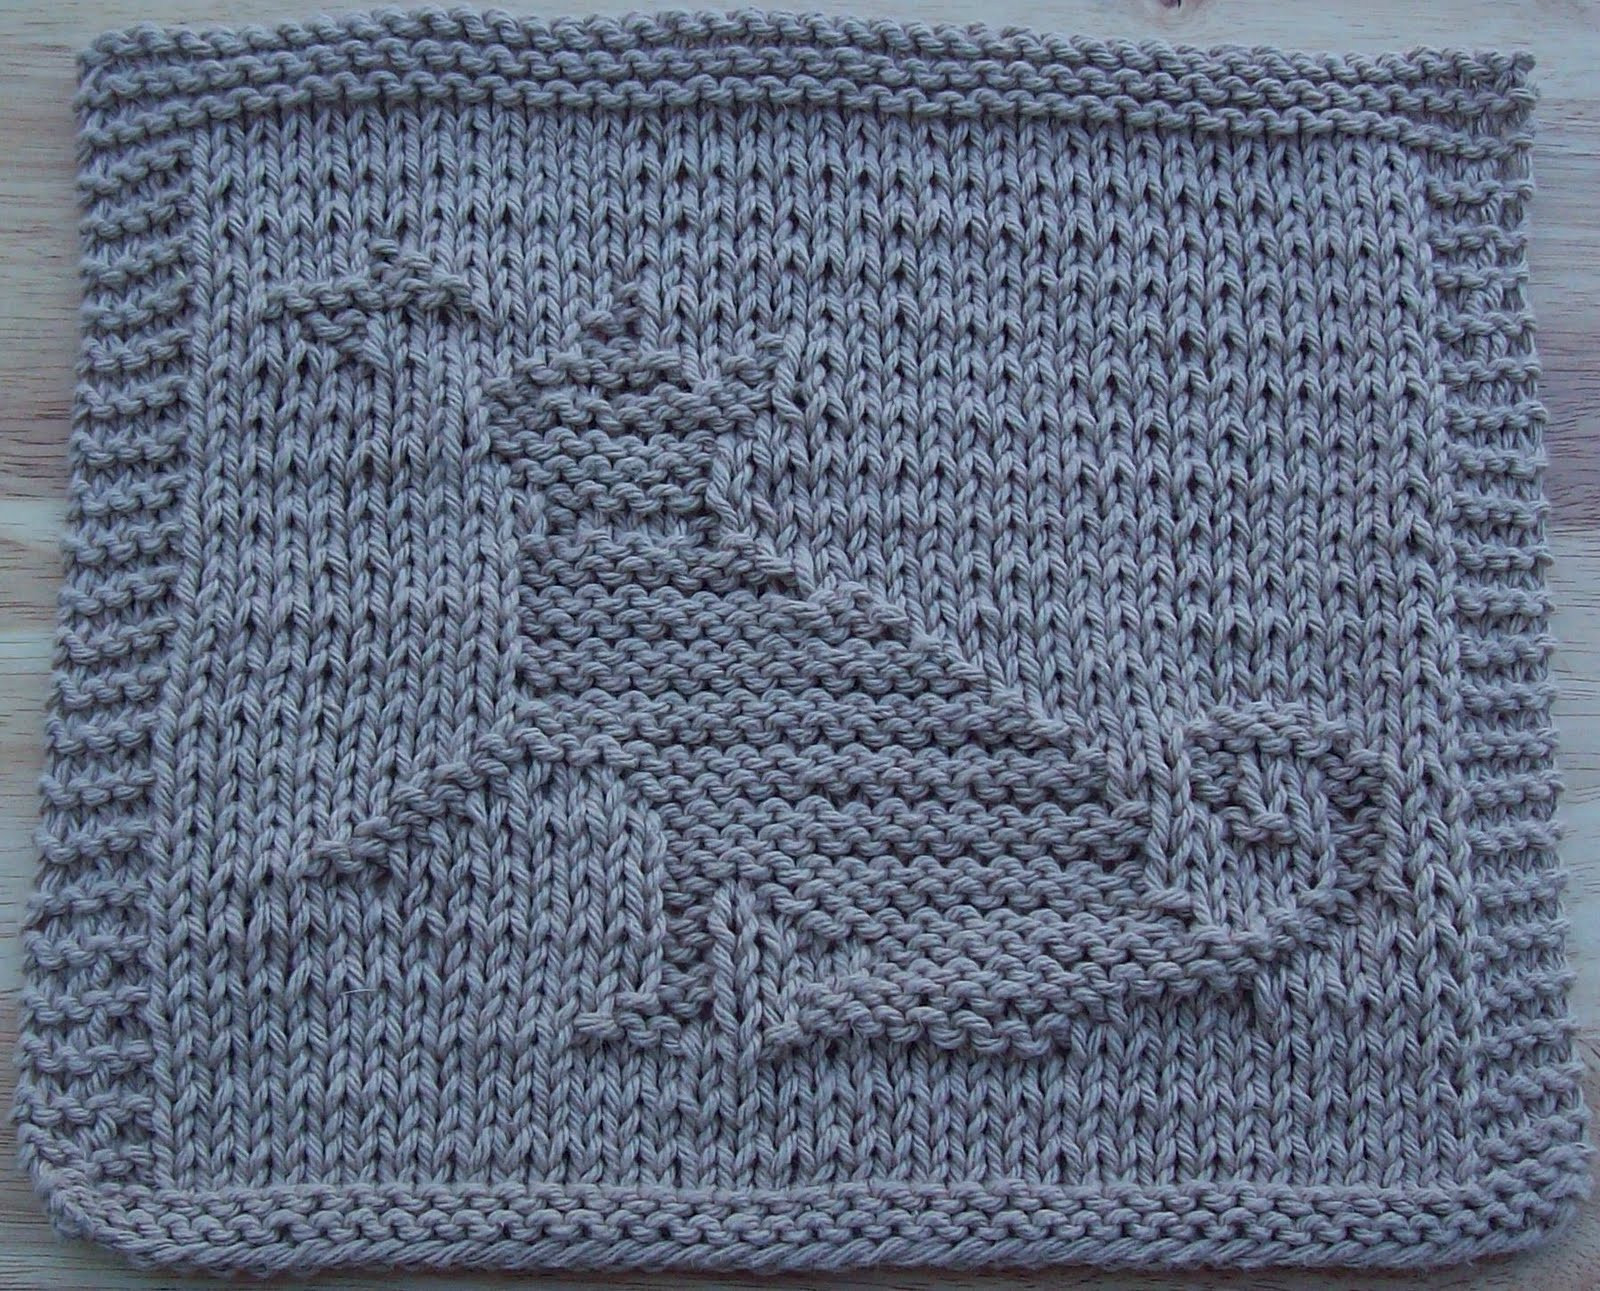 Knitted Dishcloth Patterns Lovely Free Knitted Dishcloth Patterns Of Animals Of Brilliant 47 Pics Knitted Dishcloth Patterns